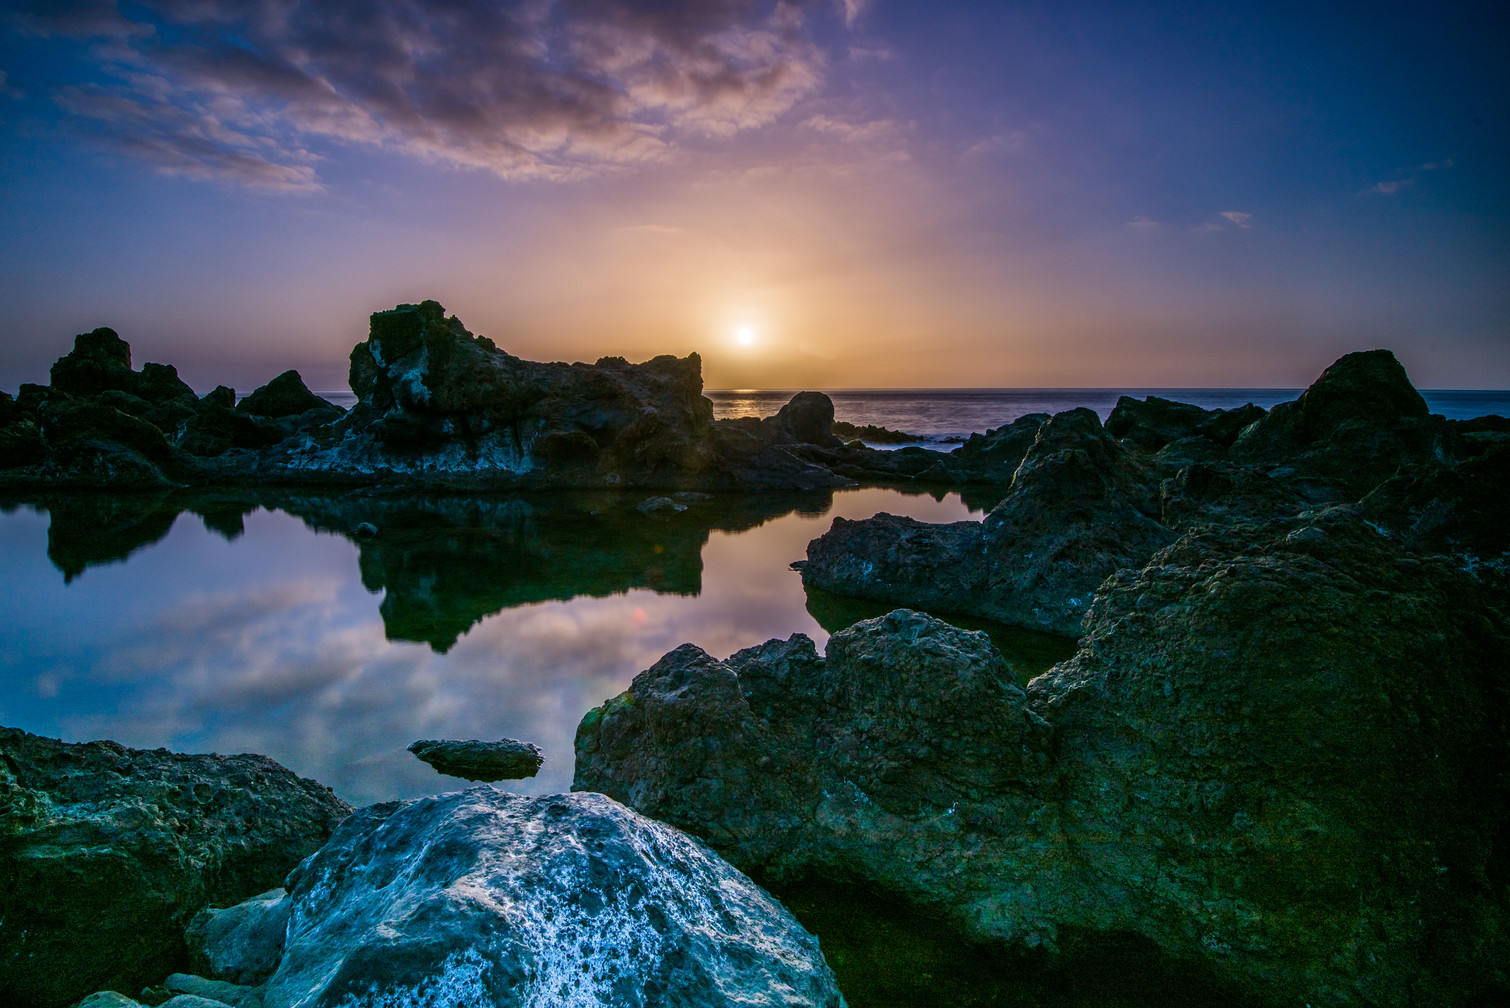 Sunset at Playa La Arena - Tenerife - Canary Islands (Spain)